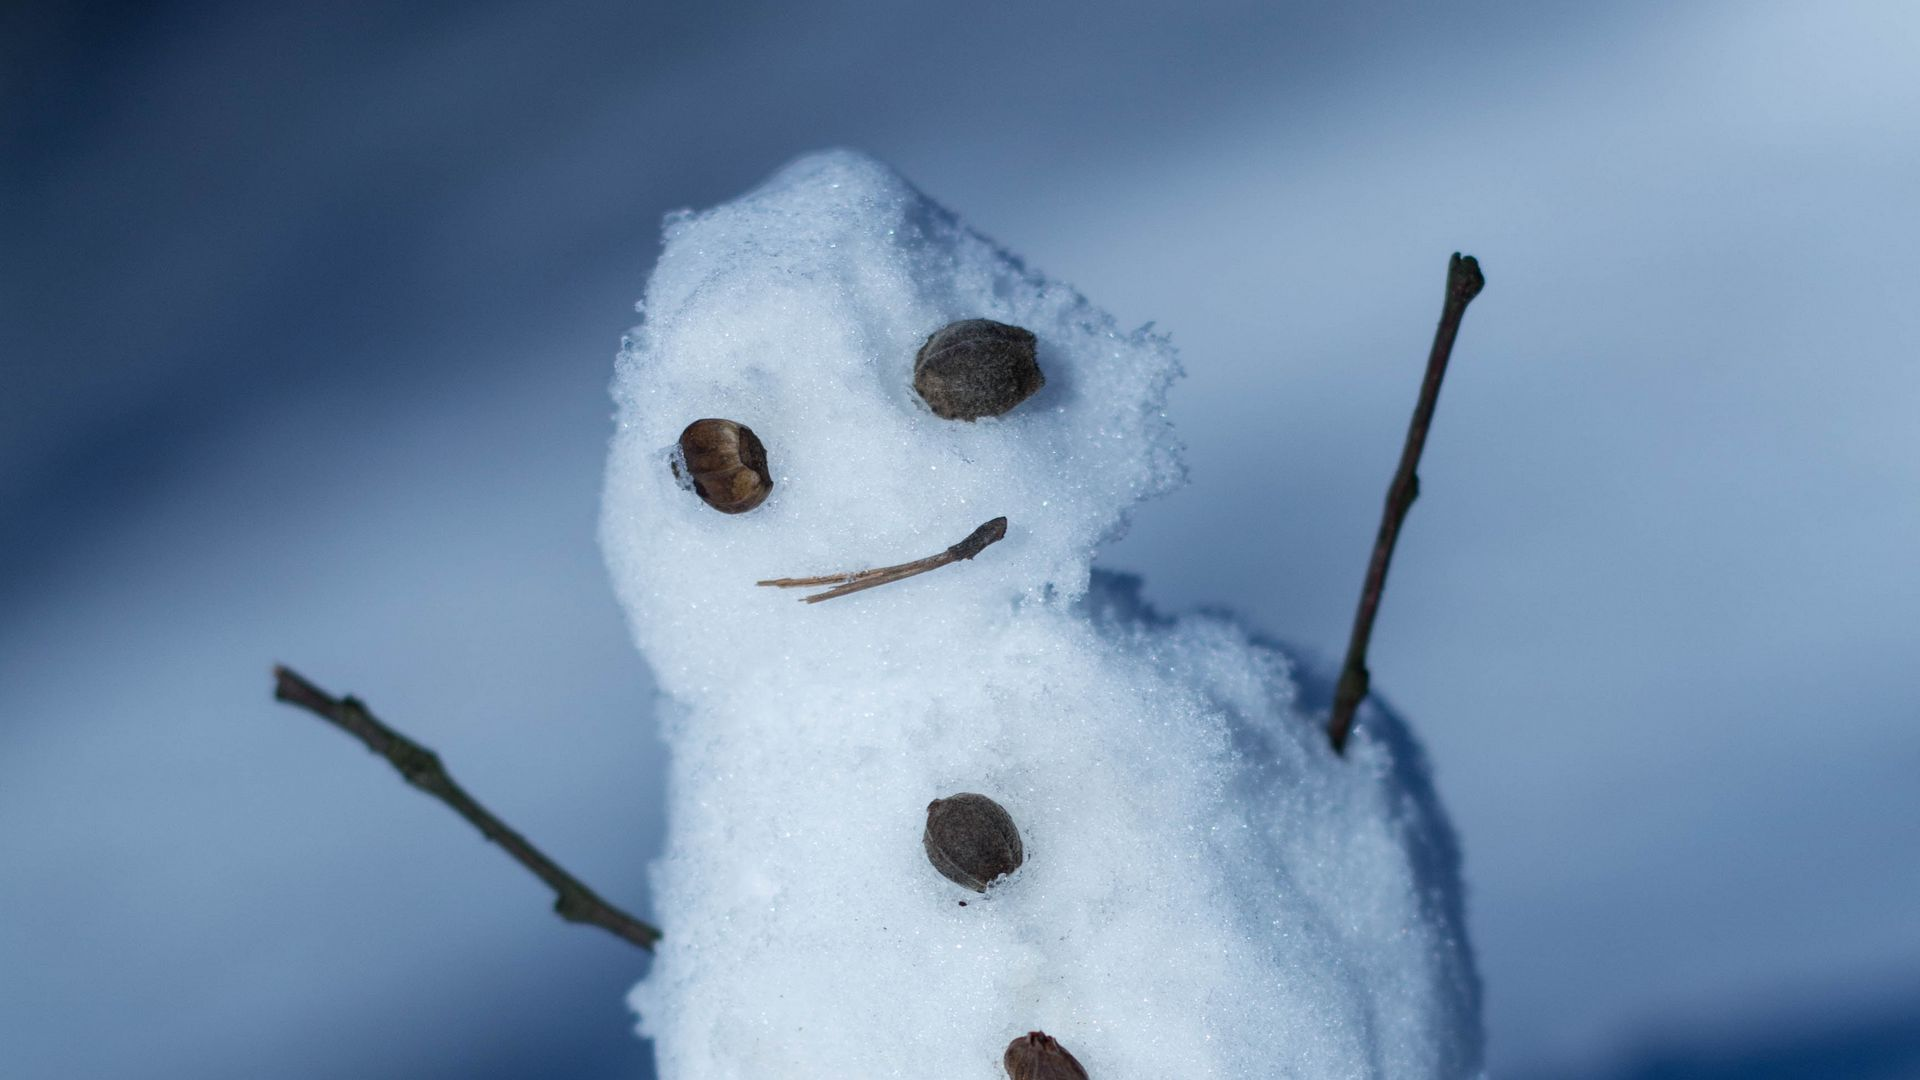 snowman photography in hd